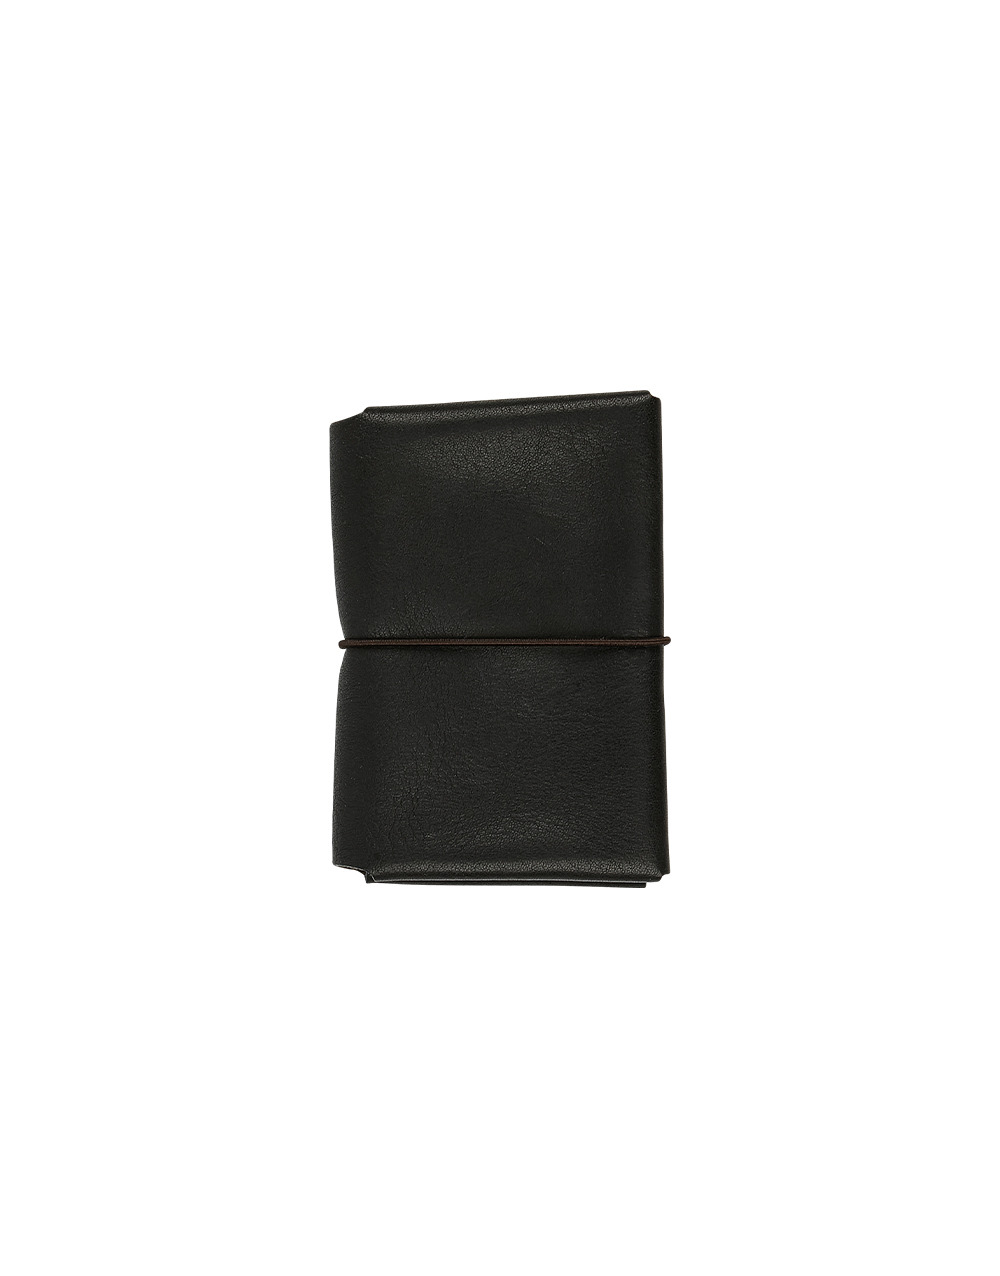 DURAM FACTORY CARD HOLDER BLACK